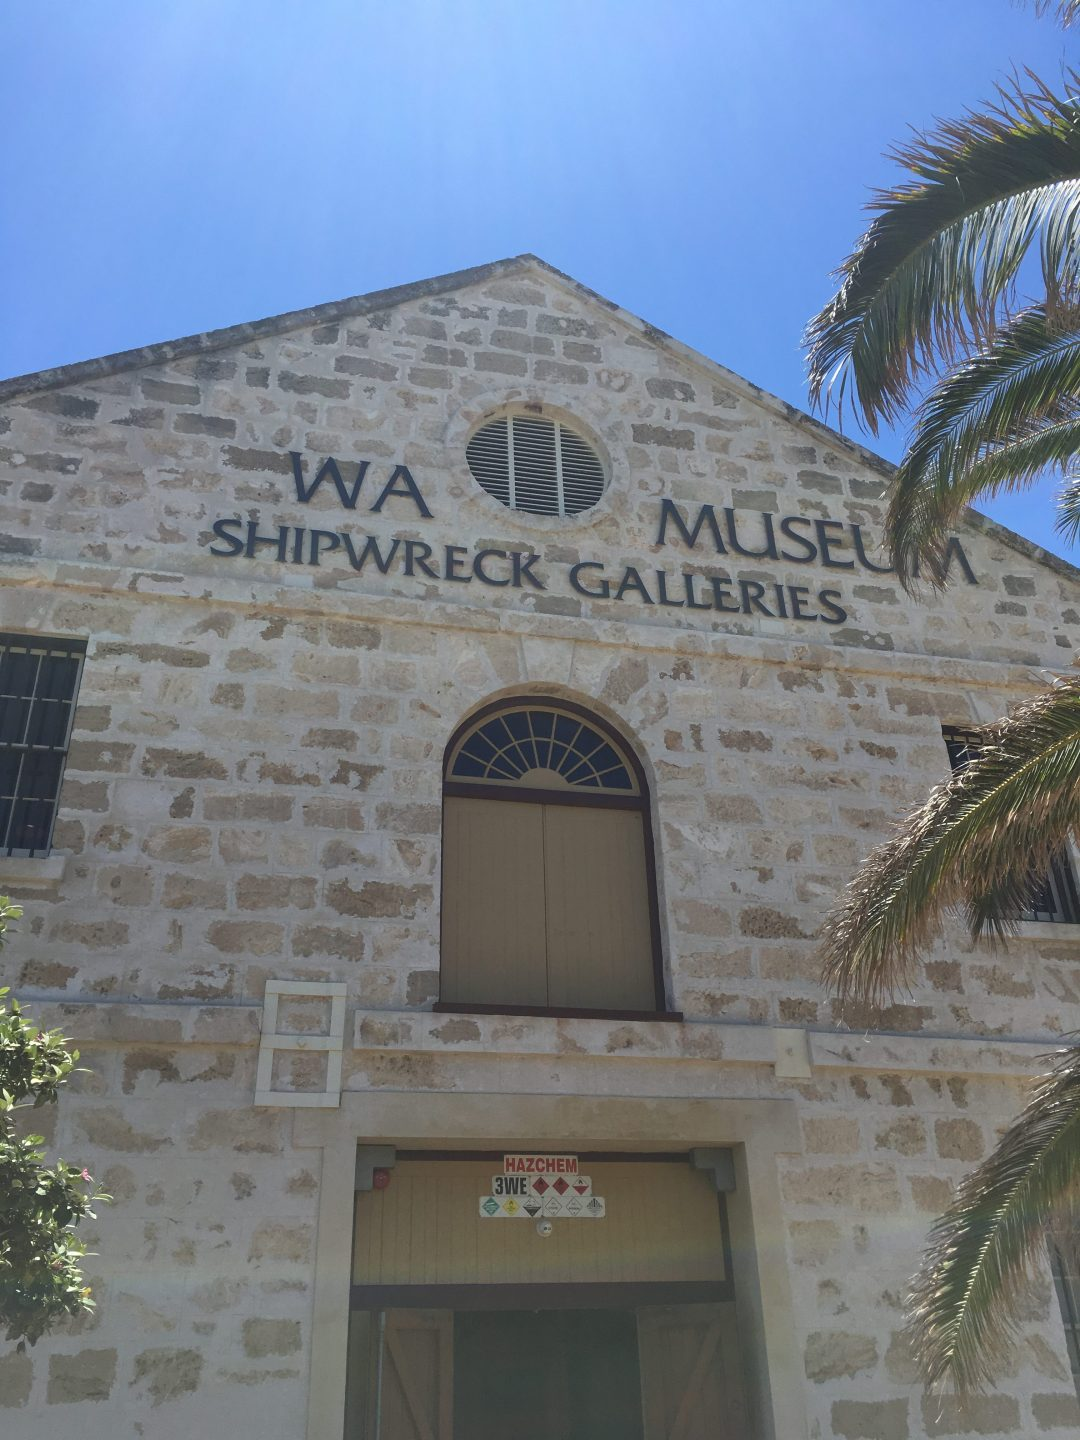 Best things to do in Fremantle - Visit WA Shipwreck Museum for historical facts and fascinating exhibitions